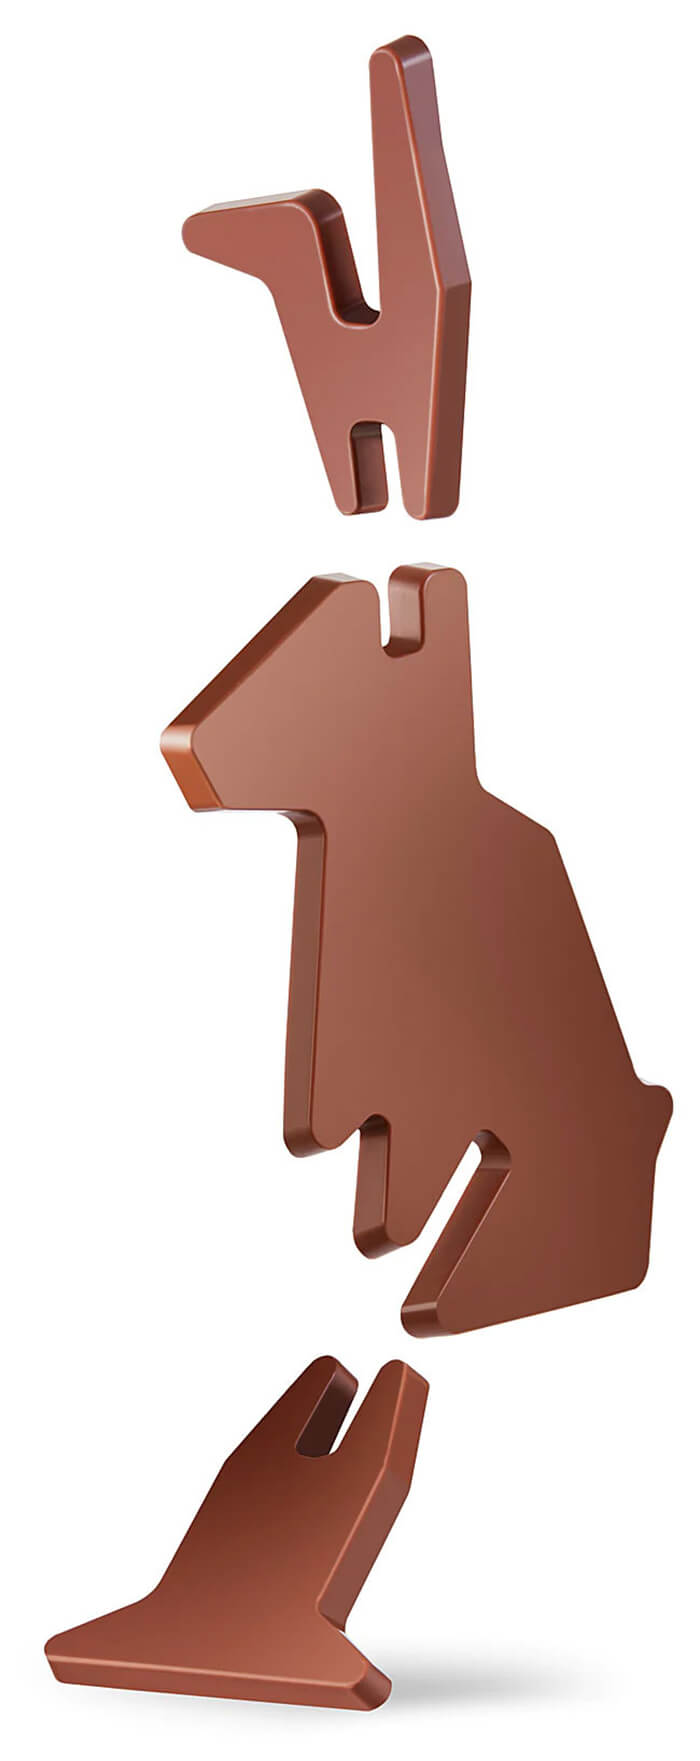 Flat-Pack Self-assembly Chocolate Bunny by IKEA